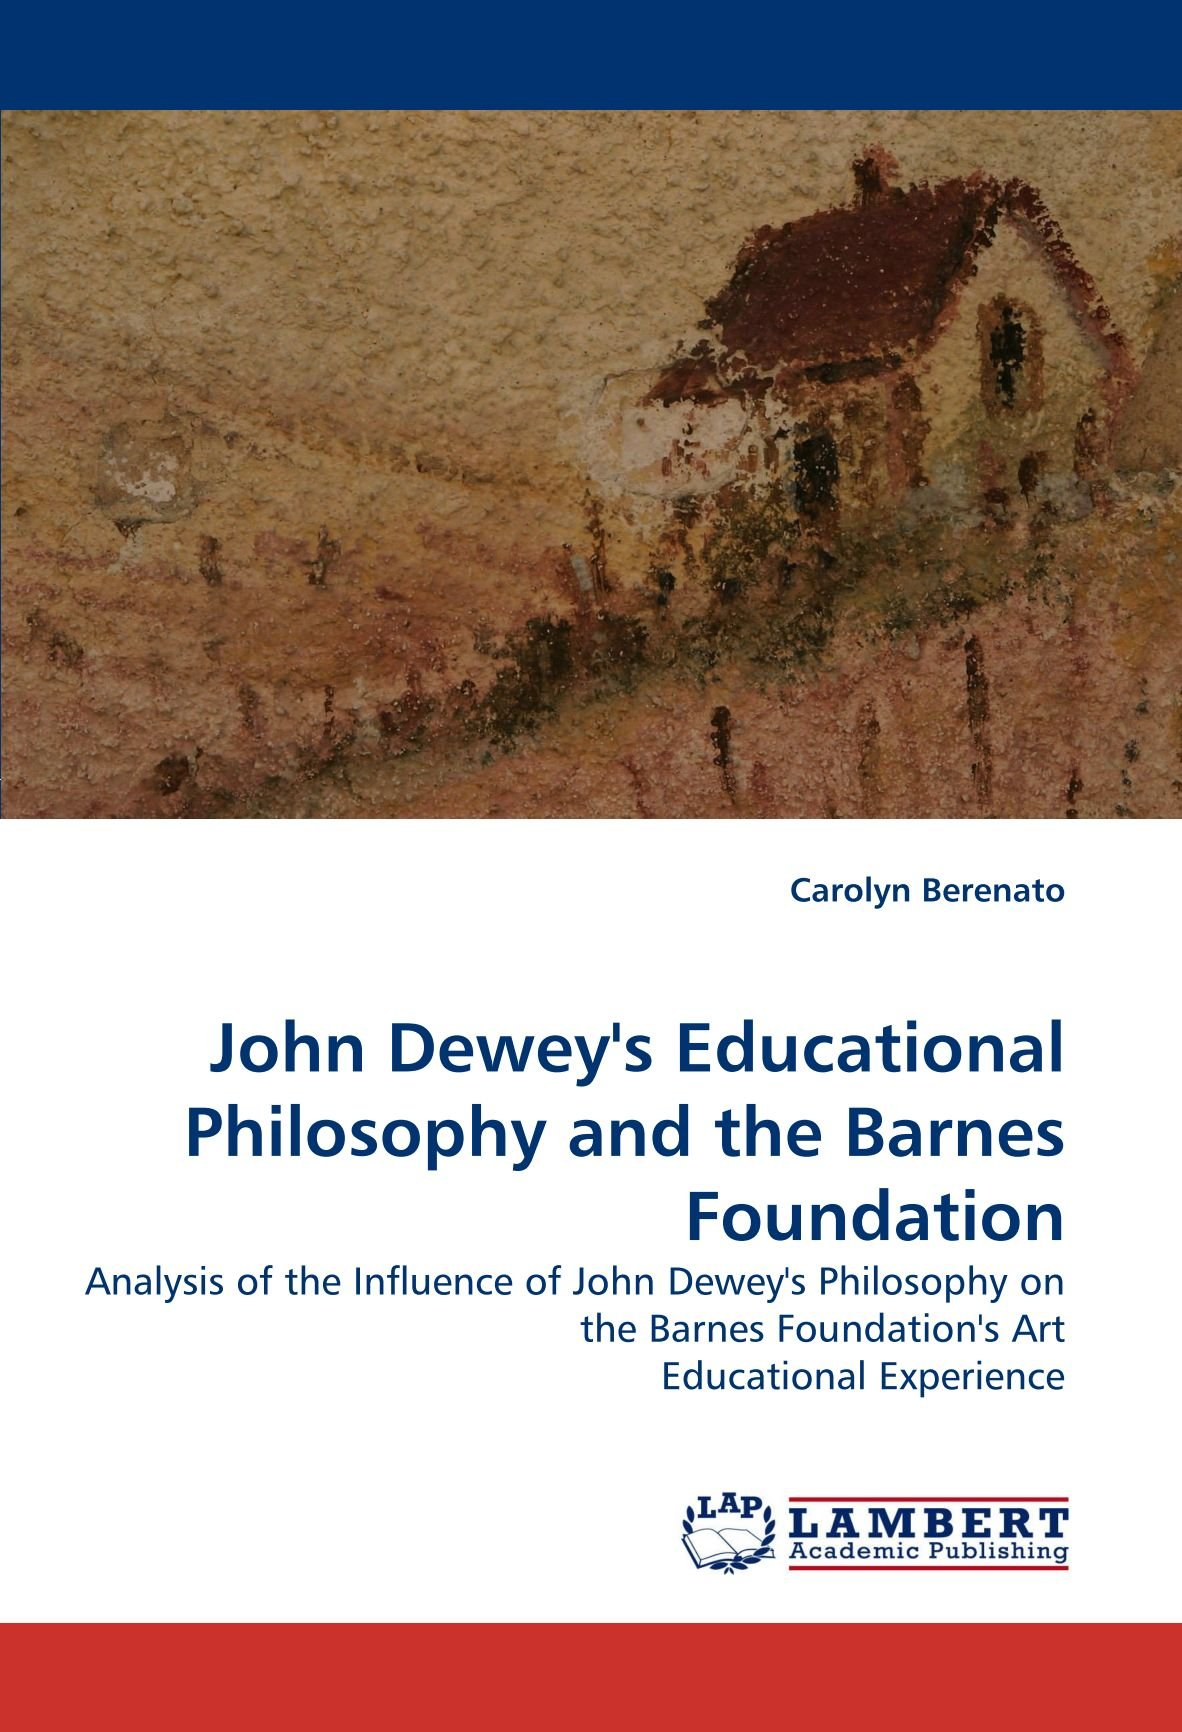 Download John Dewey's Educational Philosophy and the Barnes Foundation: Analysis of the Influence of John Dewey's Philosophy on the Barnes Foundation's Art Educational Experience pdf epub